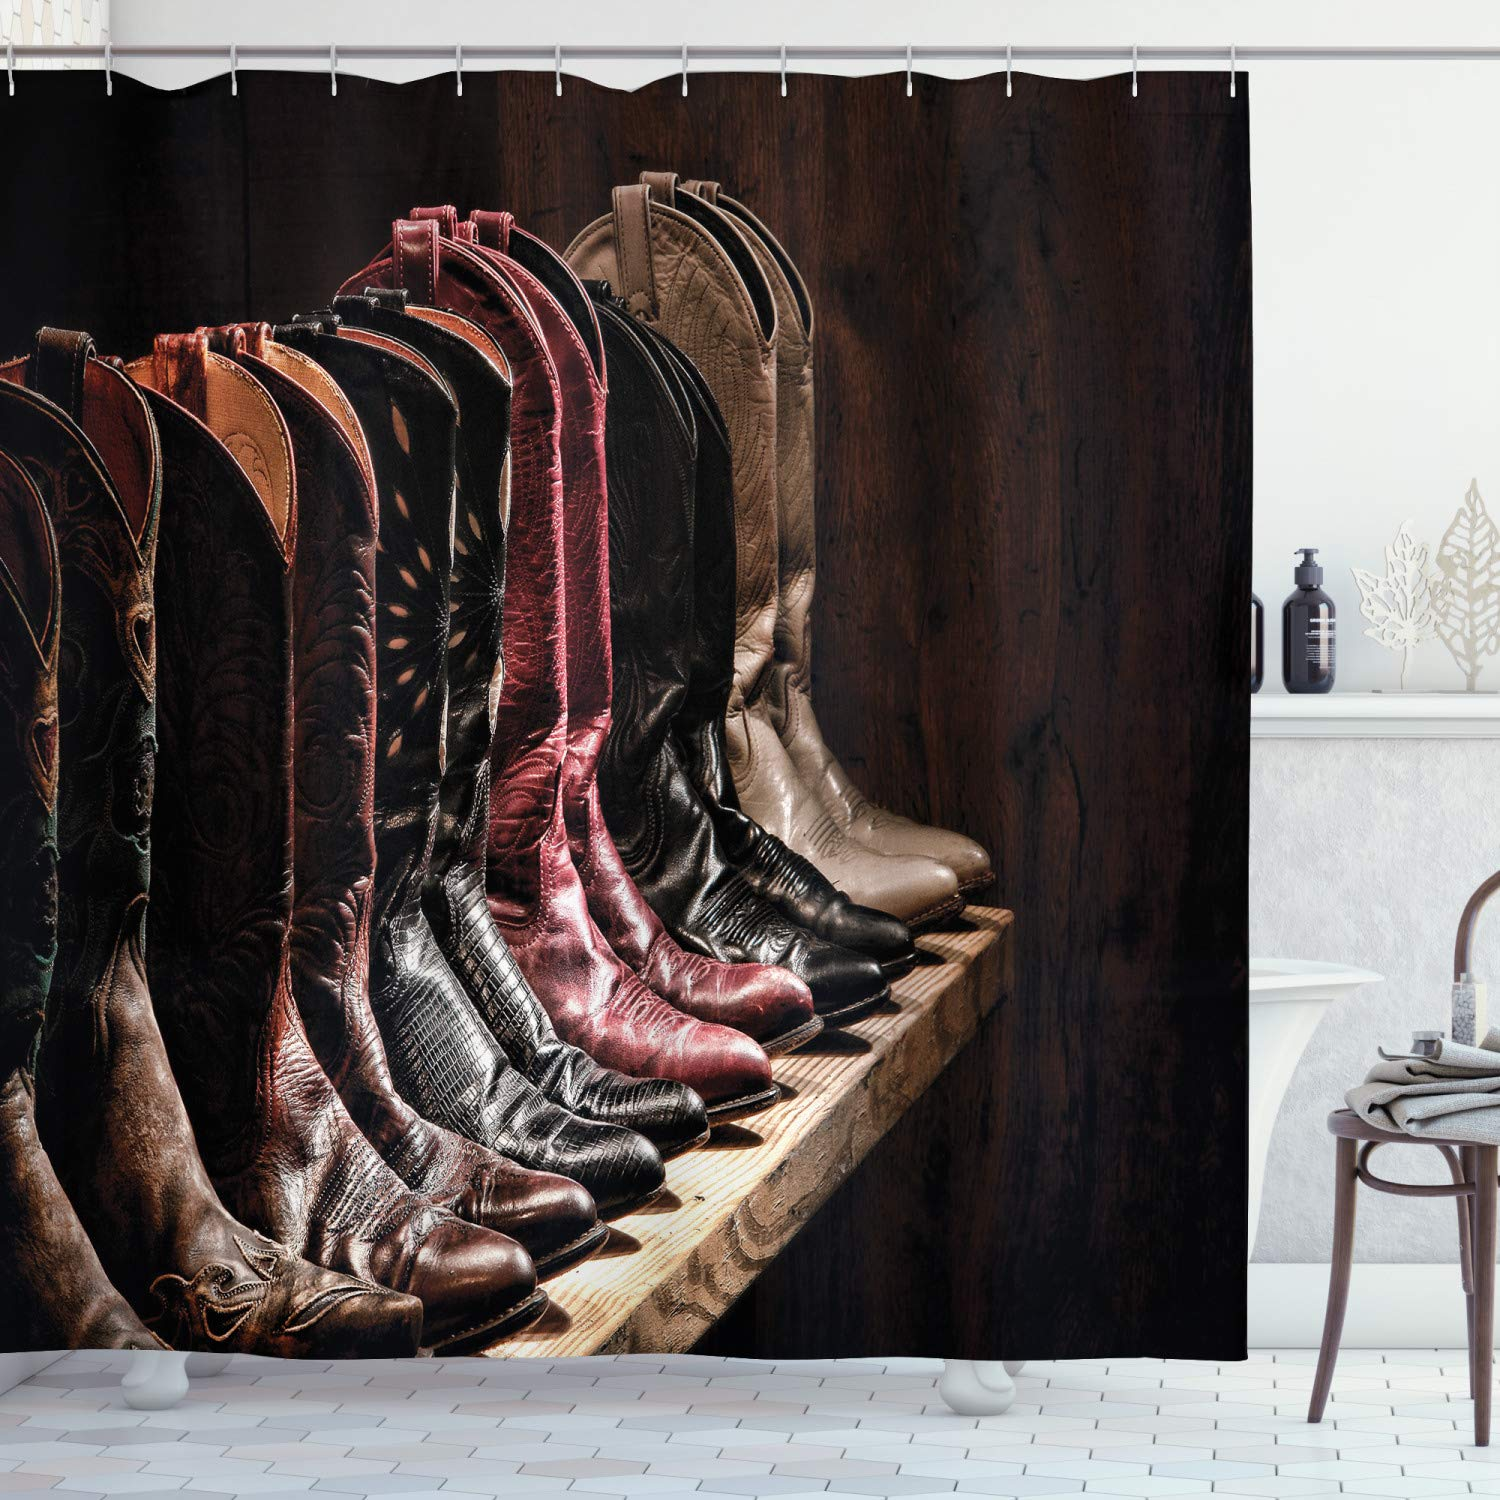 """Ambesonne Western Shower Curtain, Photograph of Various Type of Rodeo Cowgirl Leather Boots Image Art Western Fashion, Cloth Fabric Bathroom Decor Set with Hooks, 84"""" Long Extra, Brown"""